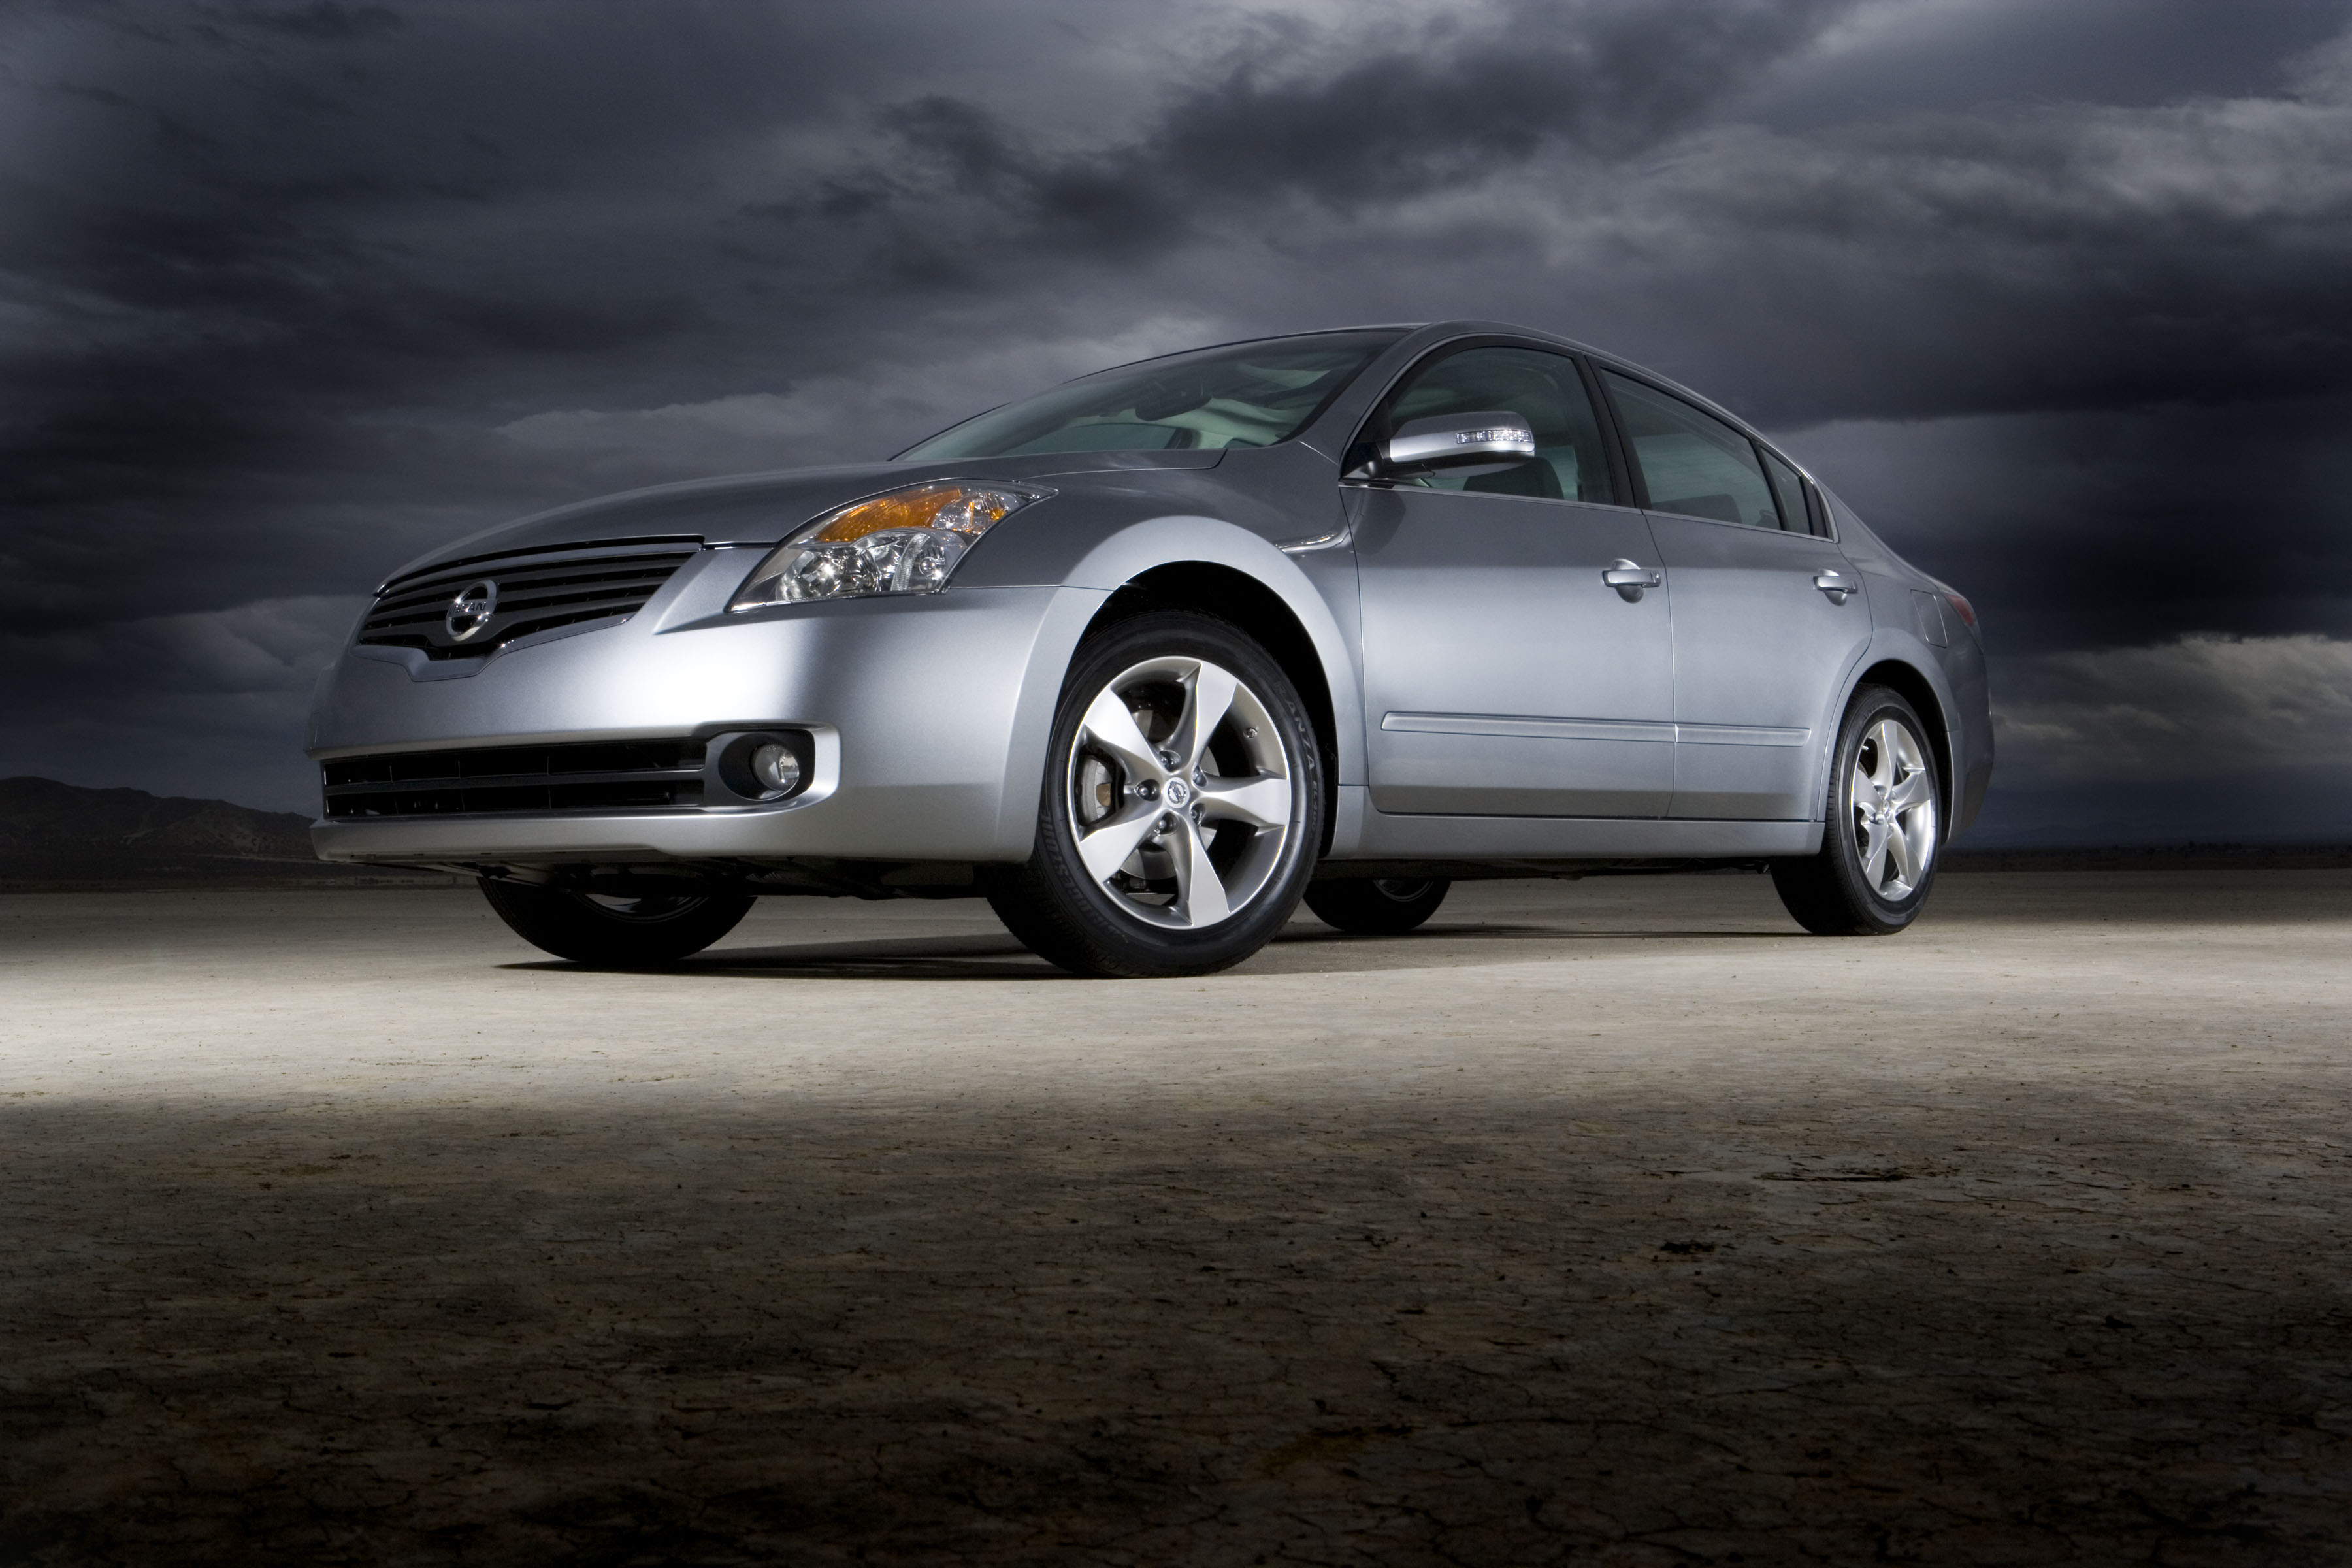 2007 nissan altima hybrid blends great performance style and fuel economy news top speed. Black Bedroom Furniture Sets. Home Design Ideas